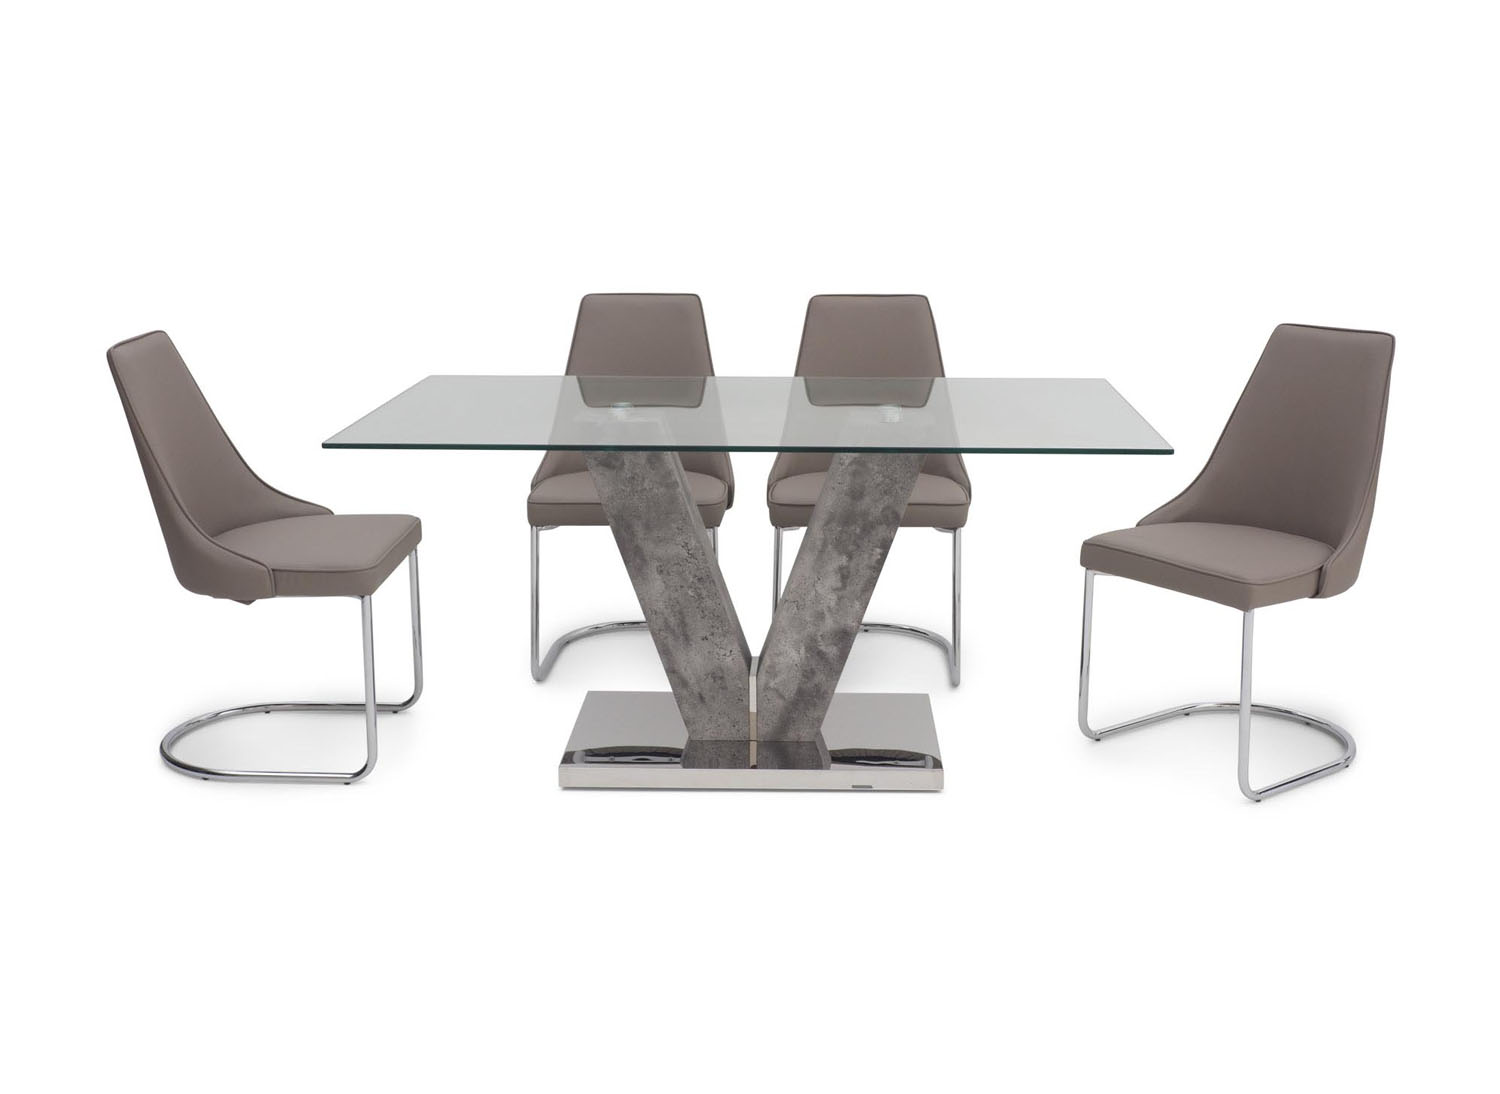 https://www.firstfurniture.co.uk/pub/media/catalog/product/d/o/dolce_dining_table_clear_mya_chair_taupe_3.jpg